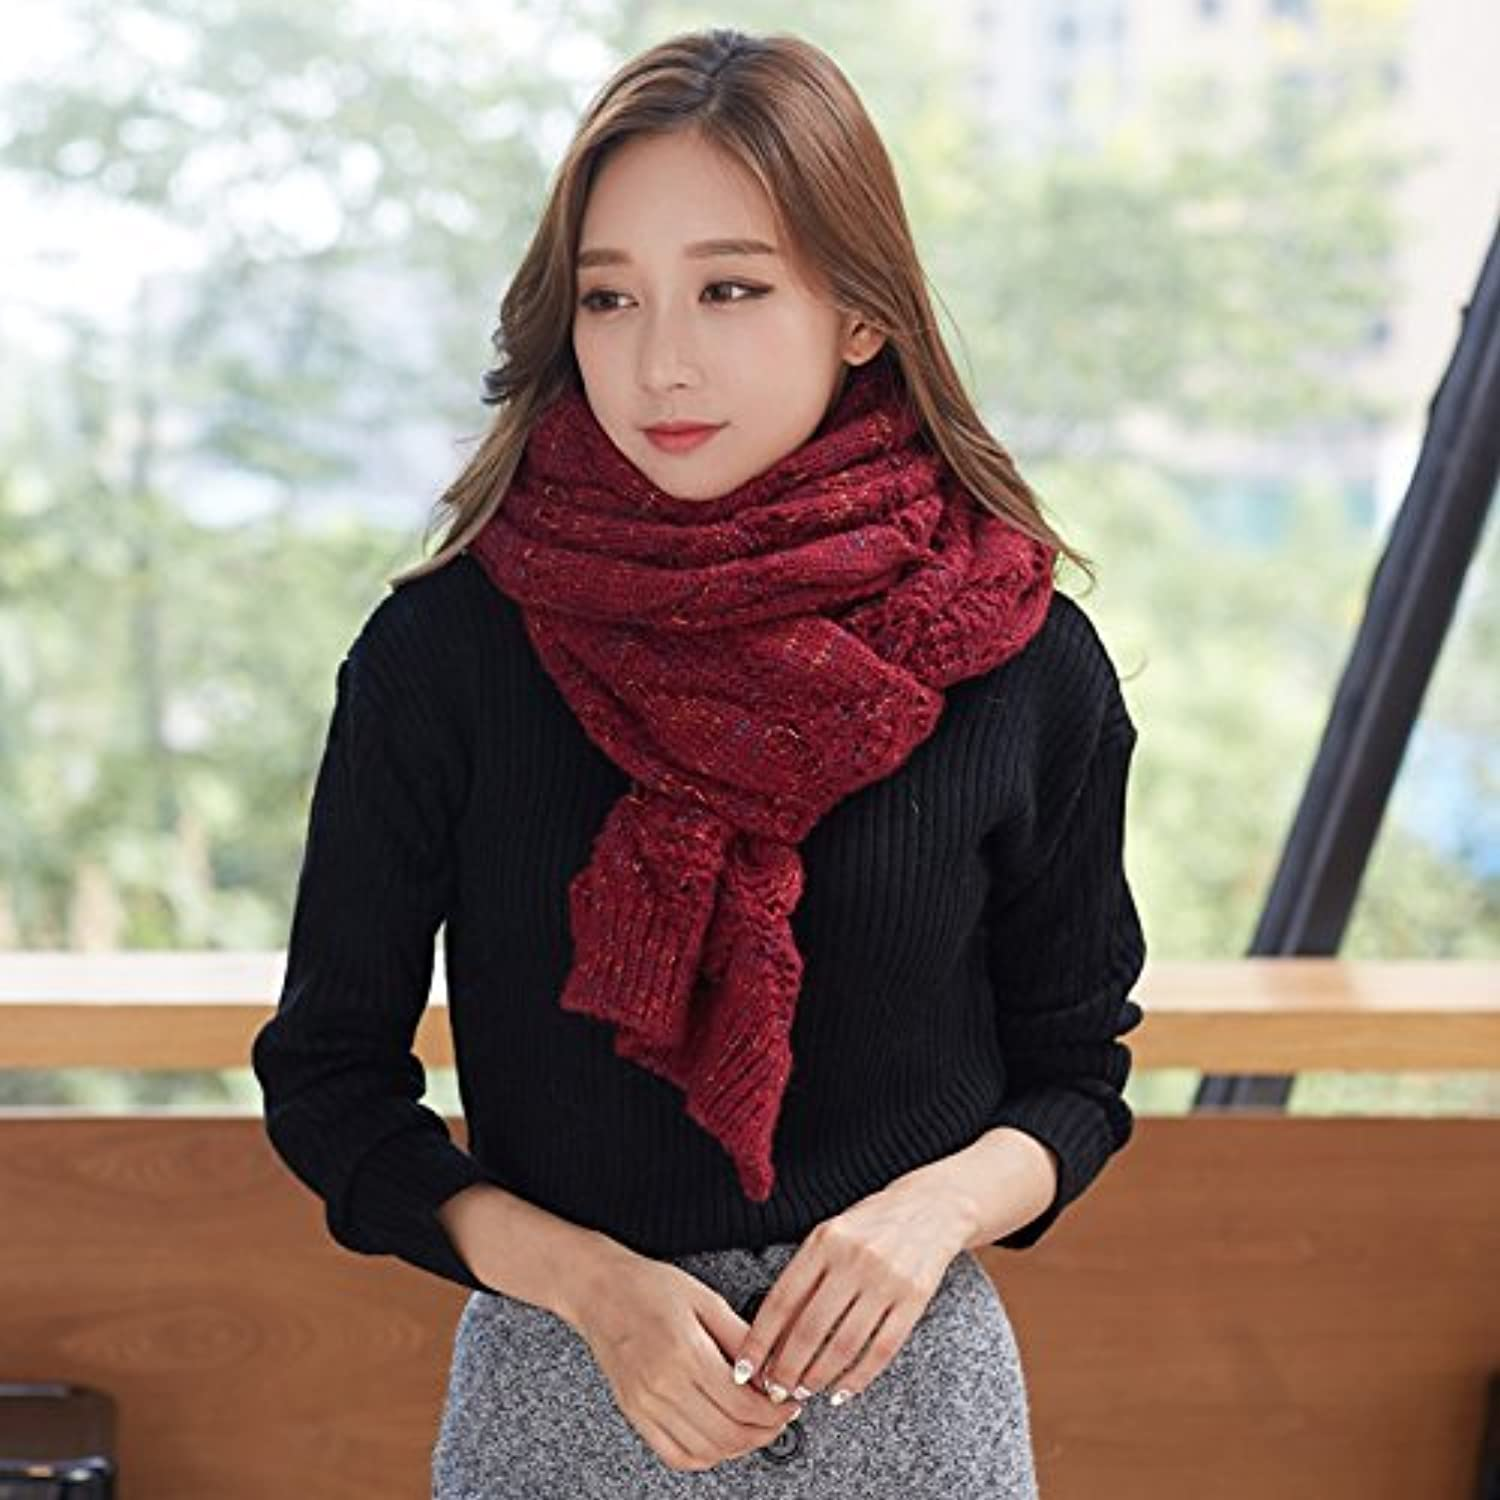 SED ScarfFemale Students AllMatch Thick Knitted Scarves in Winter Imitation Cashmere Scarf Female Autumn and Winter Korean Students Knitted Shawl Long